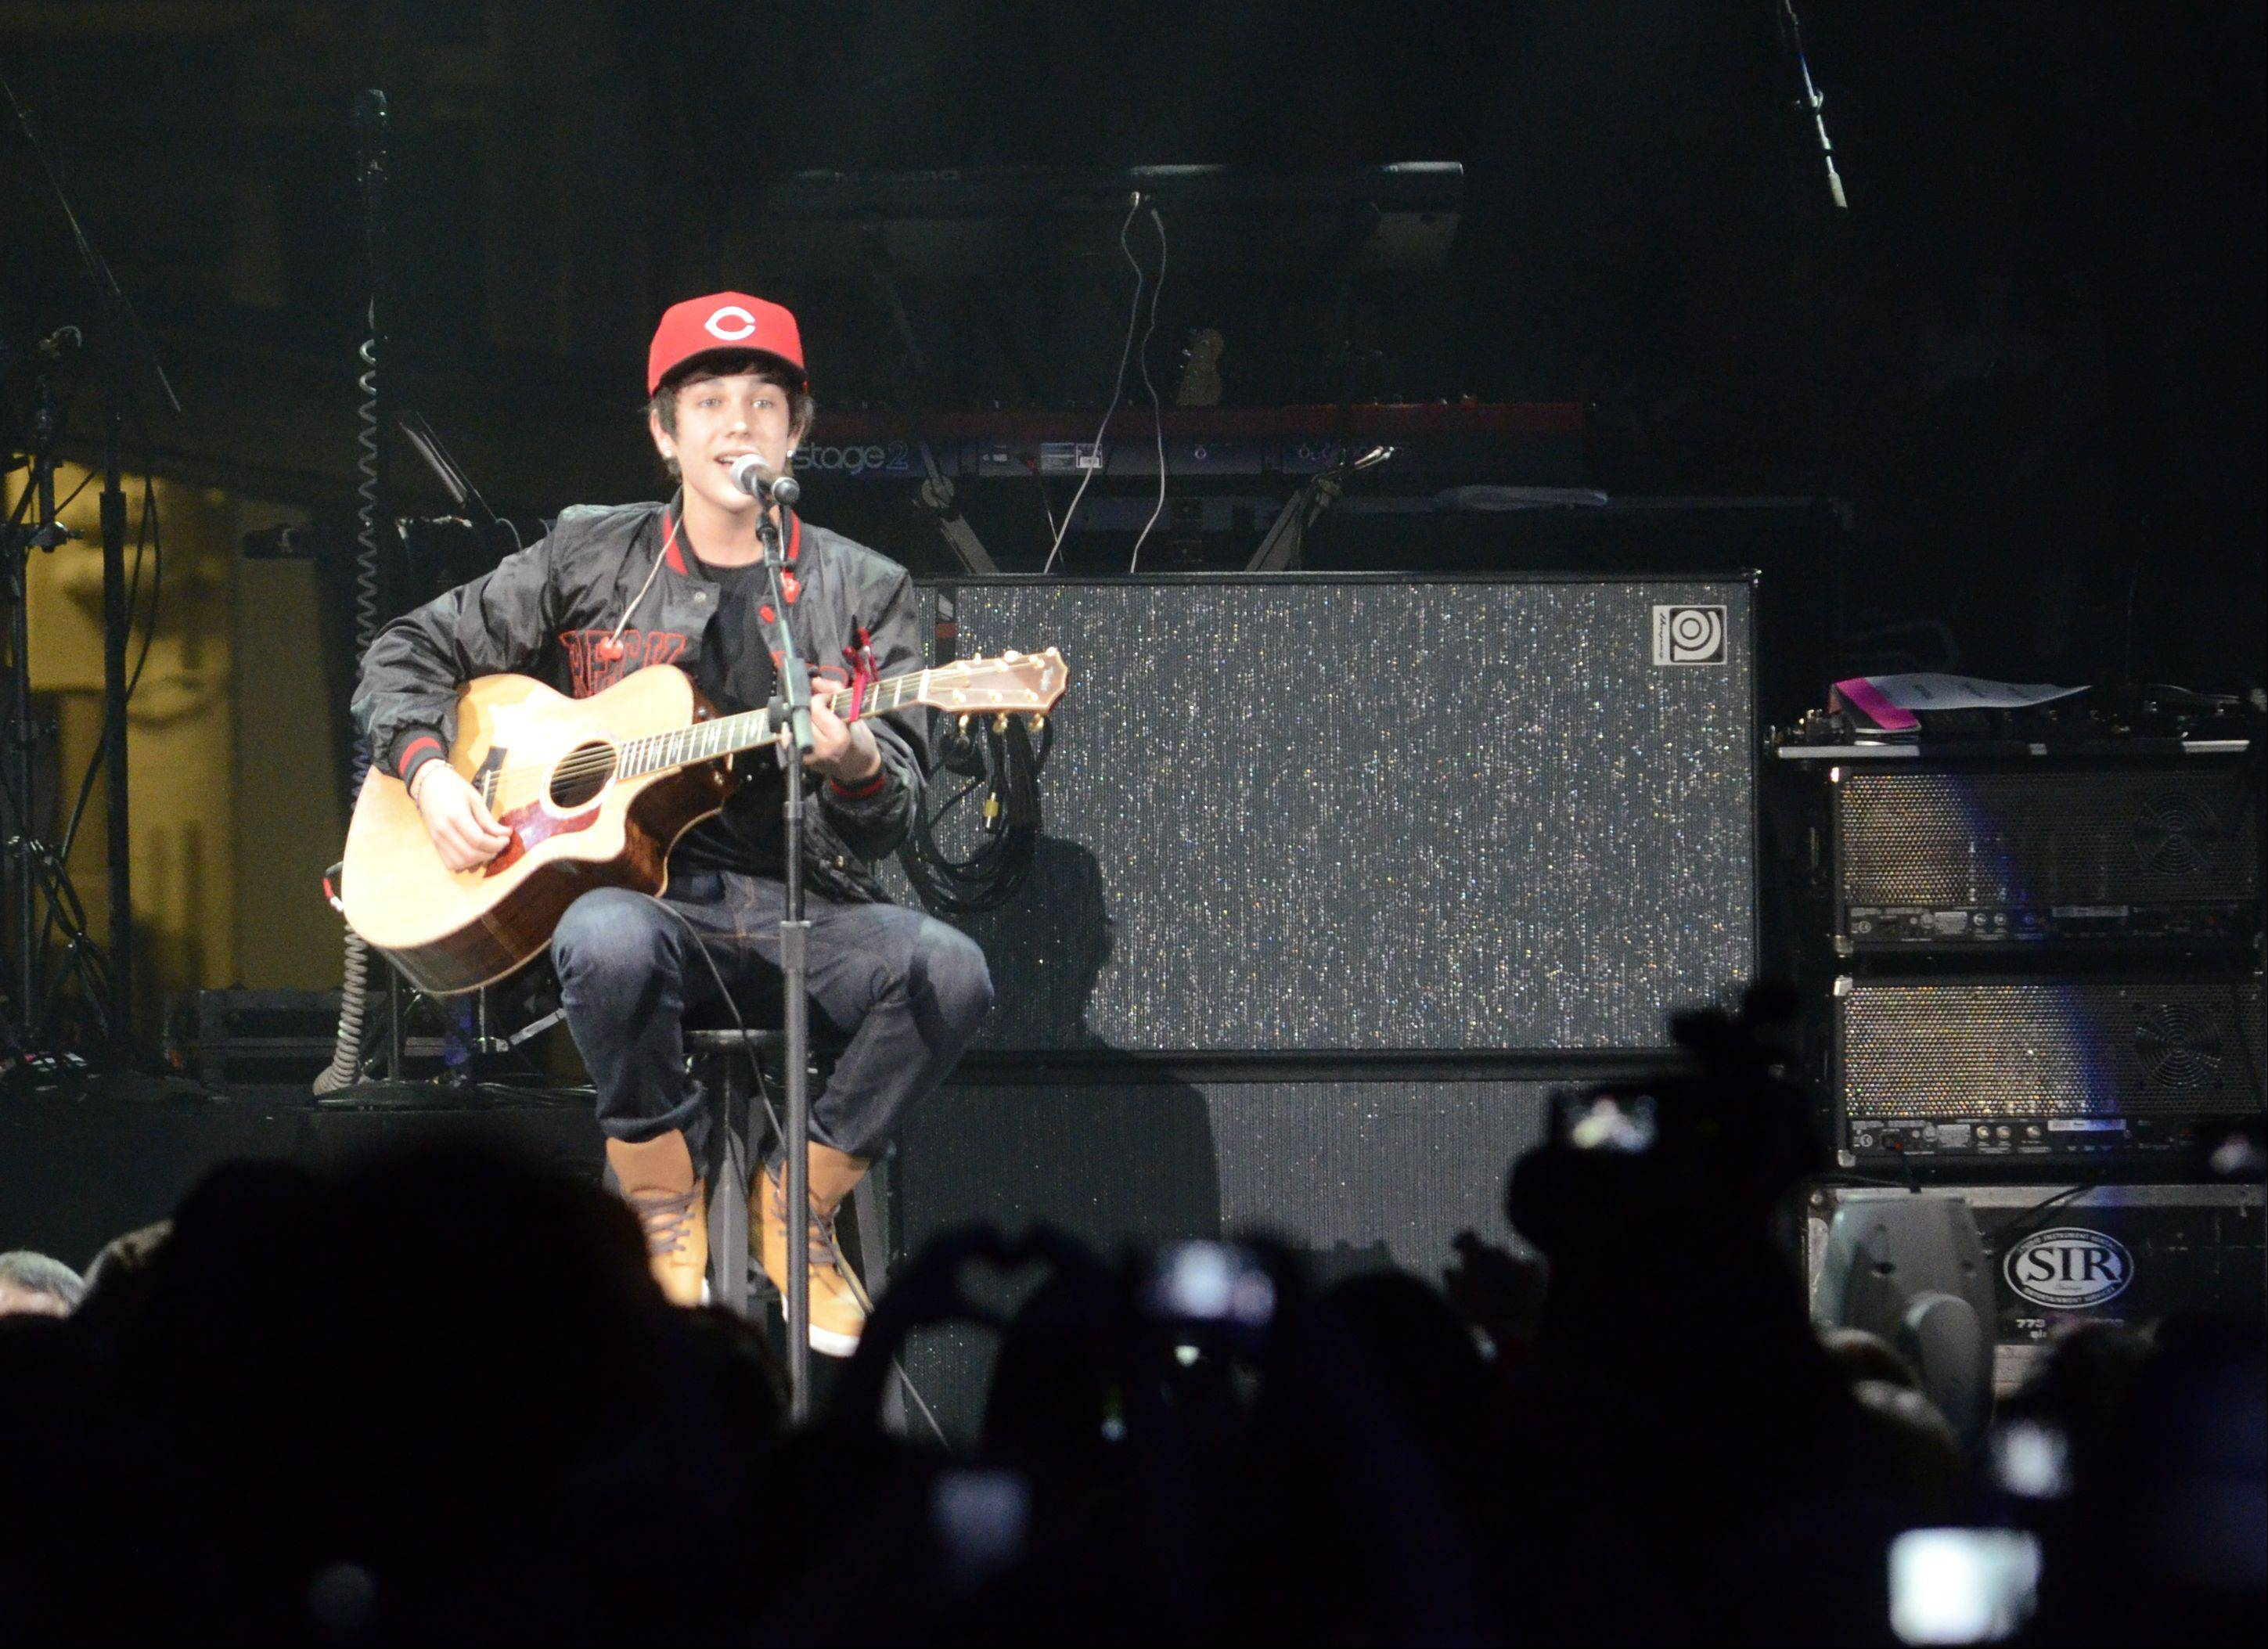 Austin Mahone performs during the Jingle Bash concert at the Allstate Arena in Rosemont on Saturday, December 15th, 2012.